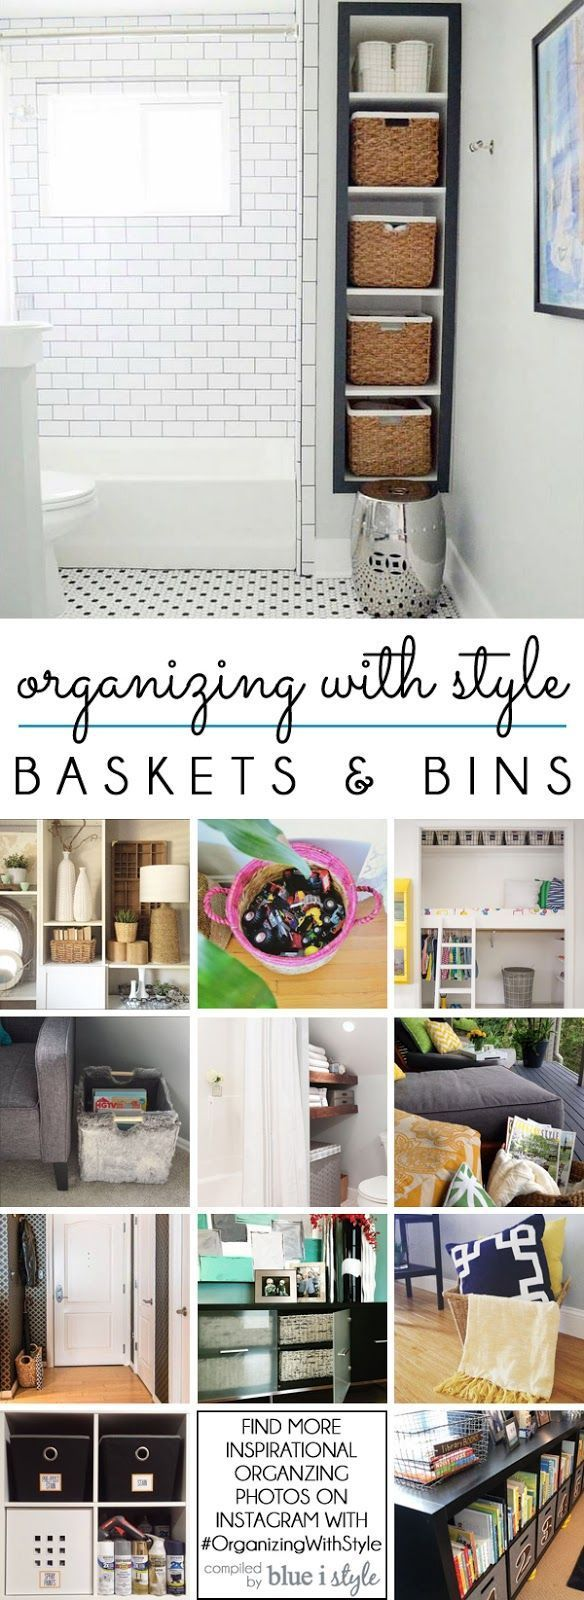 best Organization and Simplification images on Pinterest